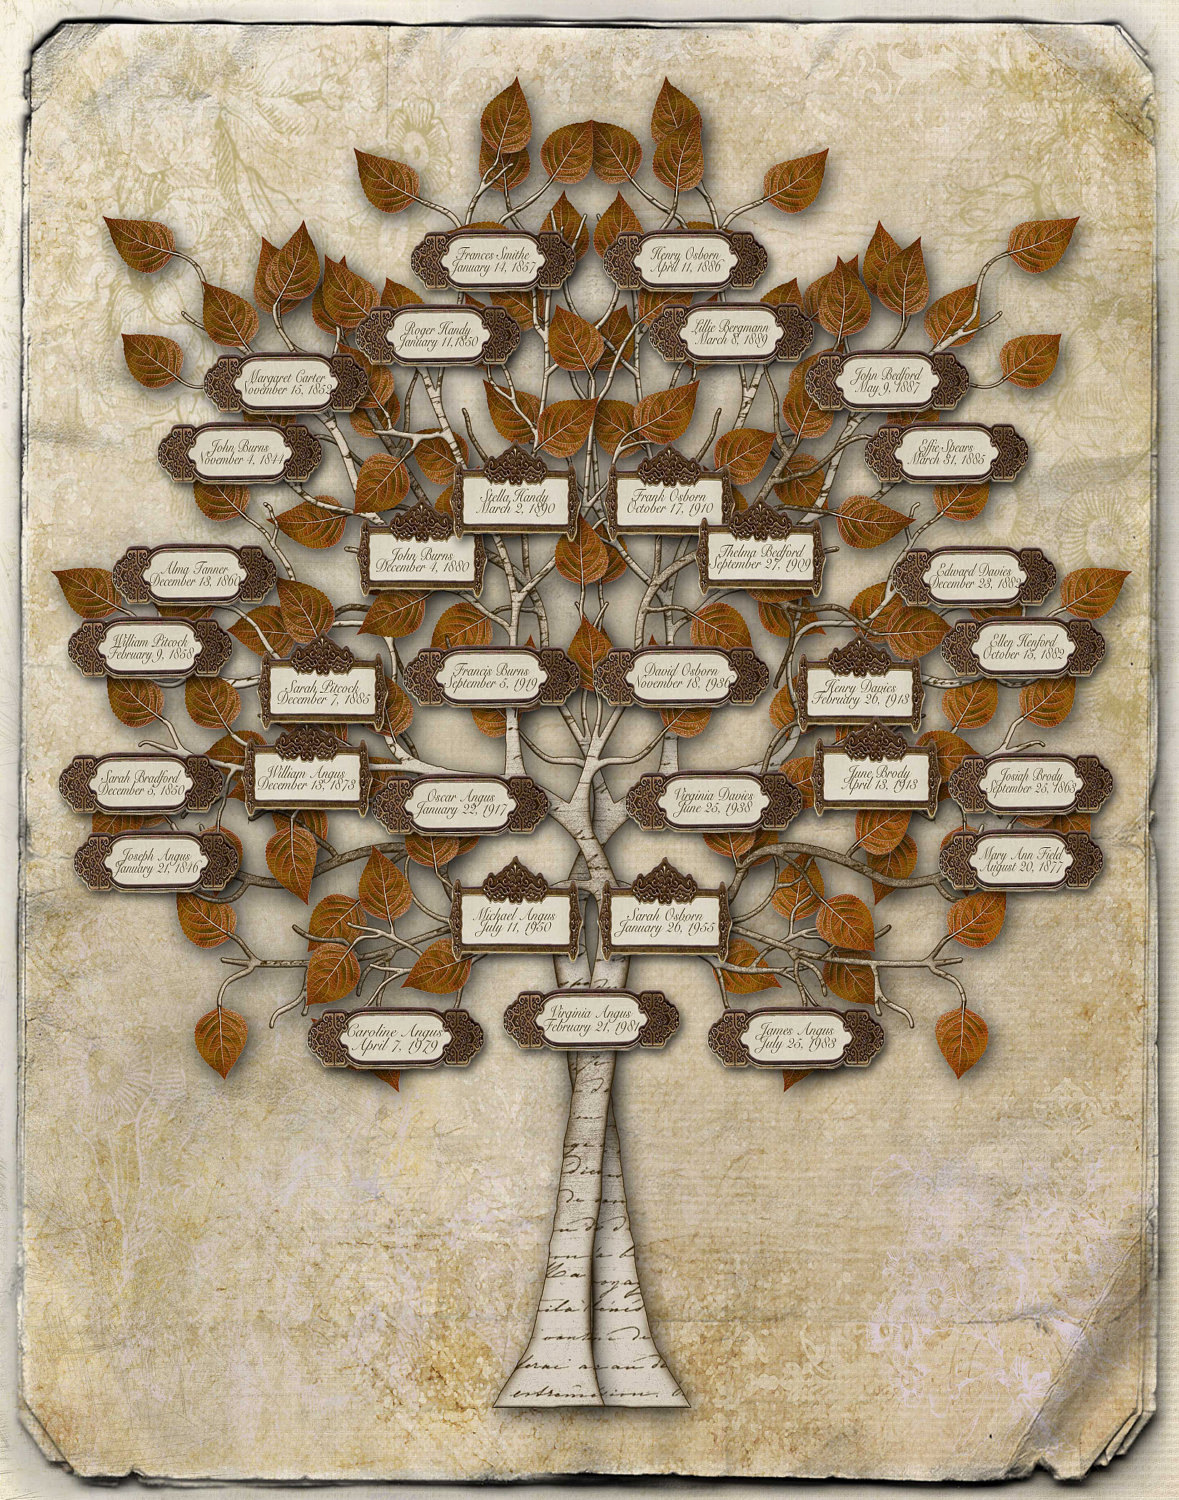 Foyer Layout Generator : Family tree design individuals with labels